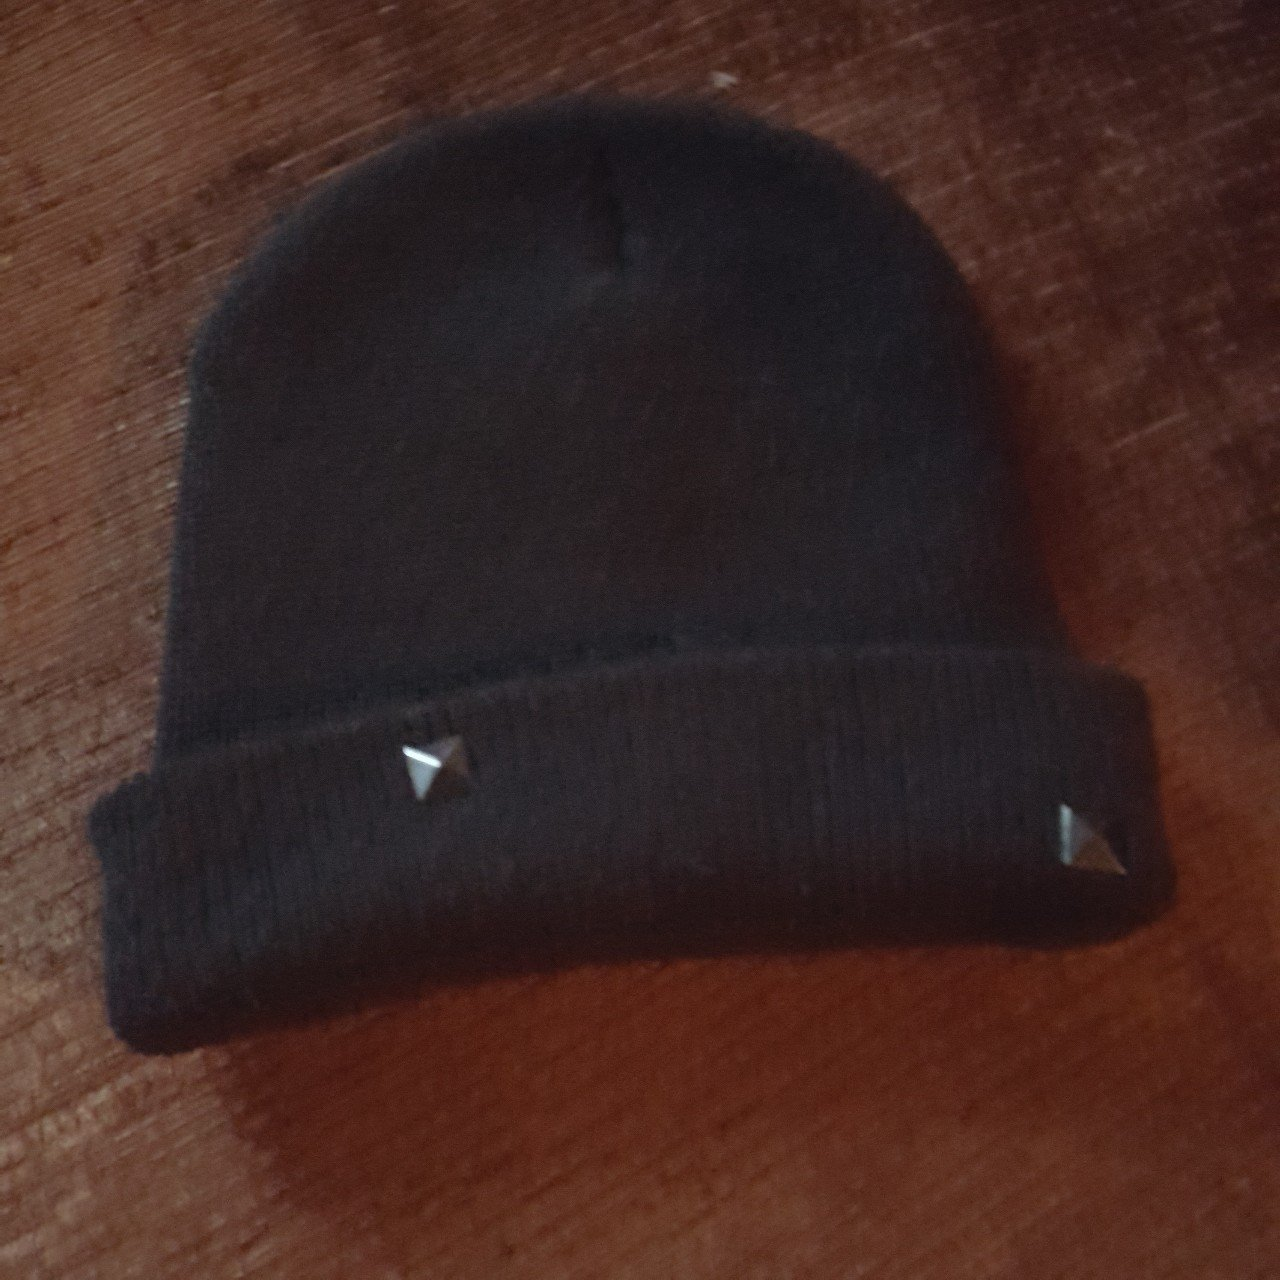 Black beanie with pyramid buttons. Have worn a few times is - Depop 0433375c4c1